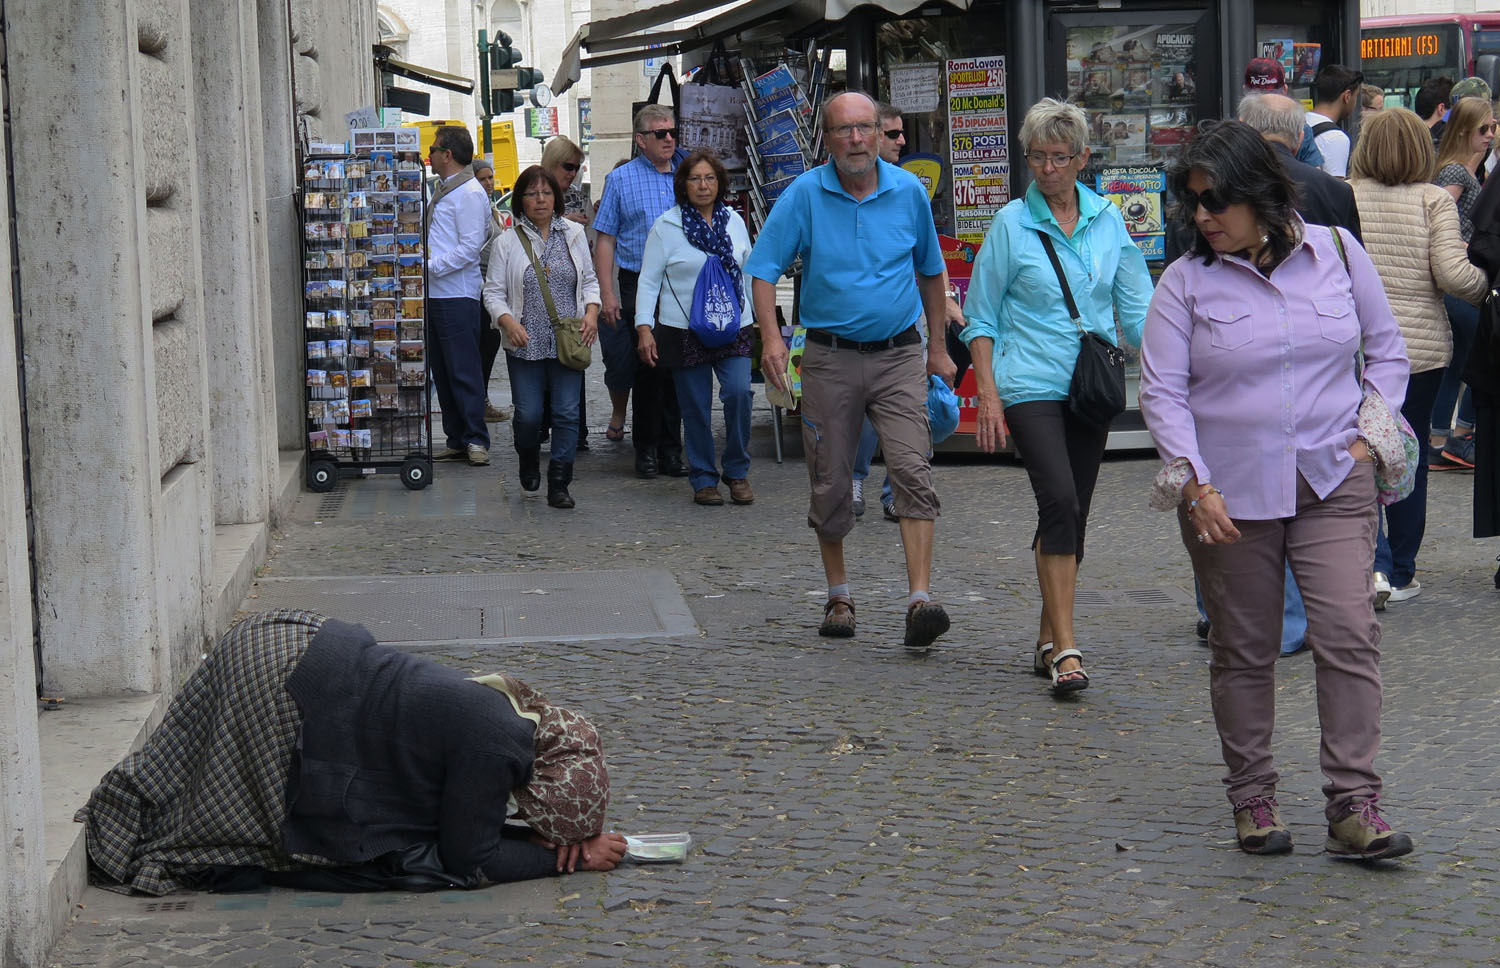 Italy-Rome-Street-Scenes-Begging-Woman